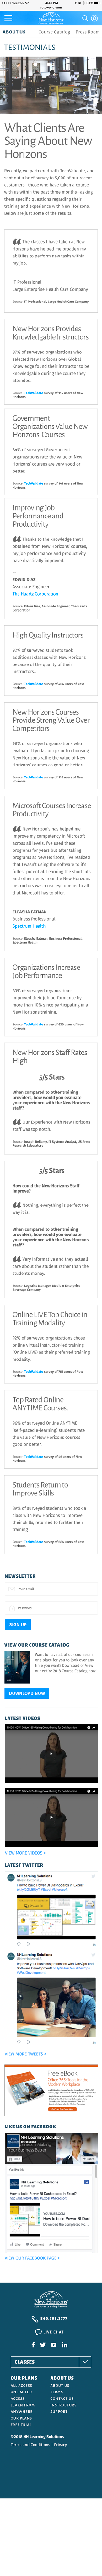 New Horizons Learning Solutions Mobile